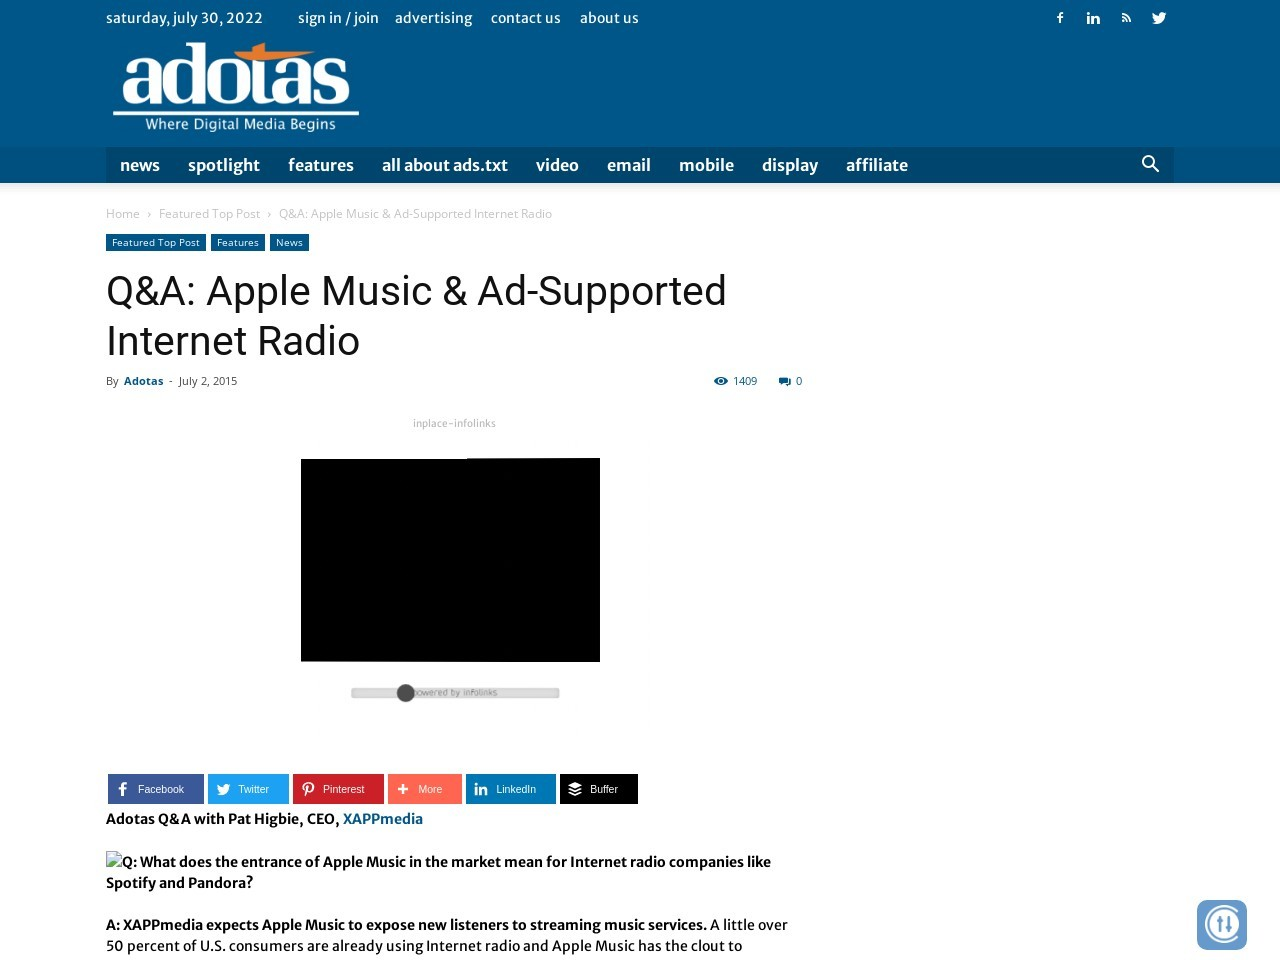 Q&A: Apple Music & Ad-Supported Internet Radio